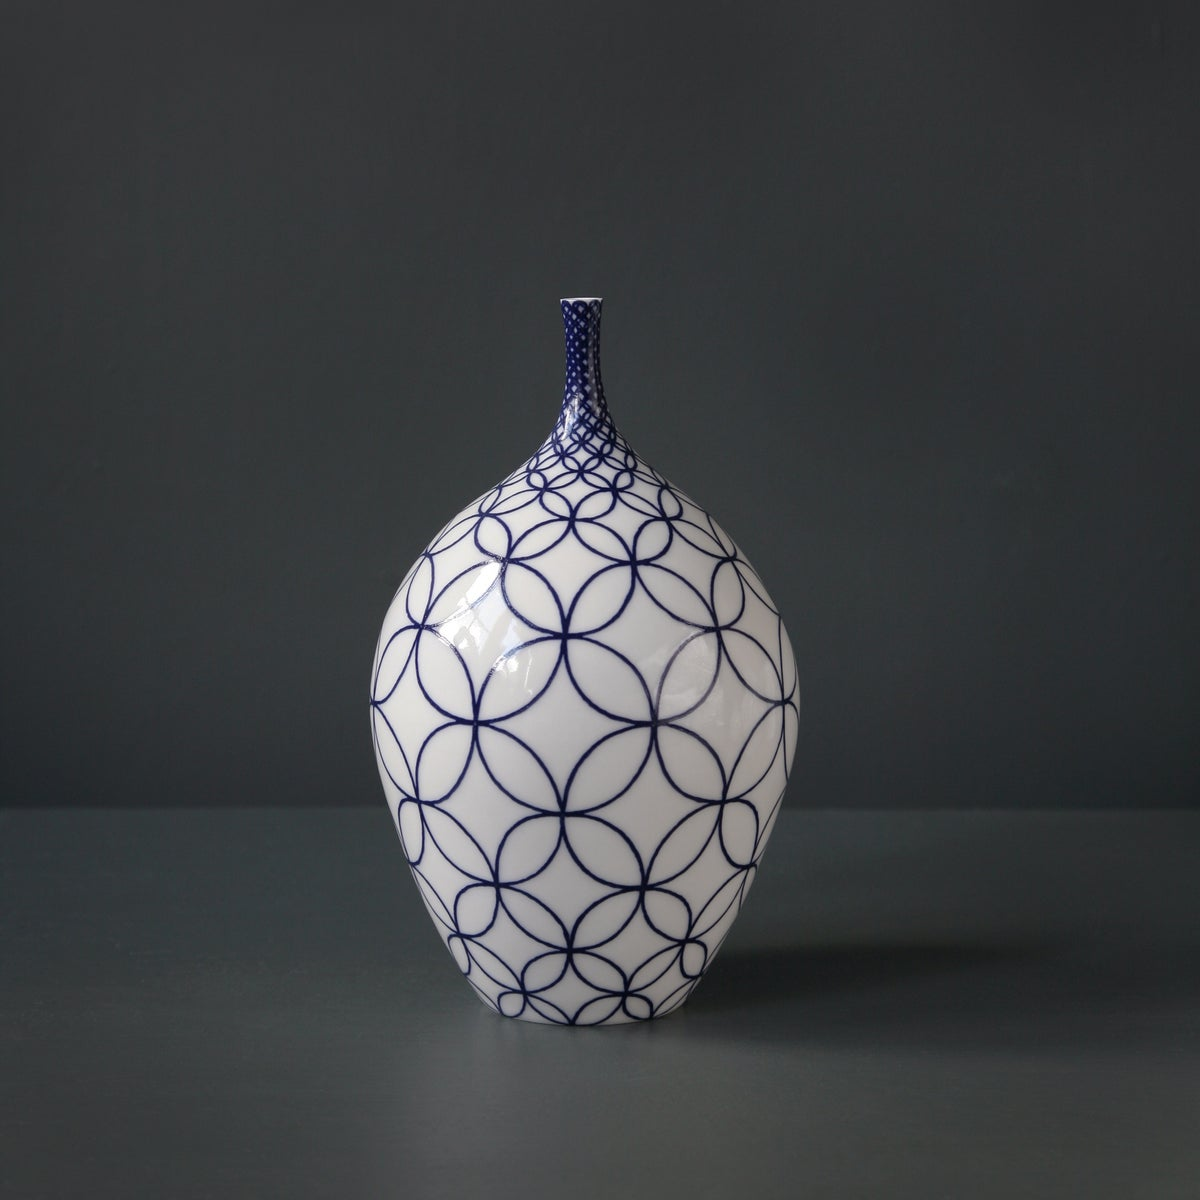 Image of Medium Bottle Form by Rhian Malin.